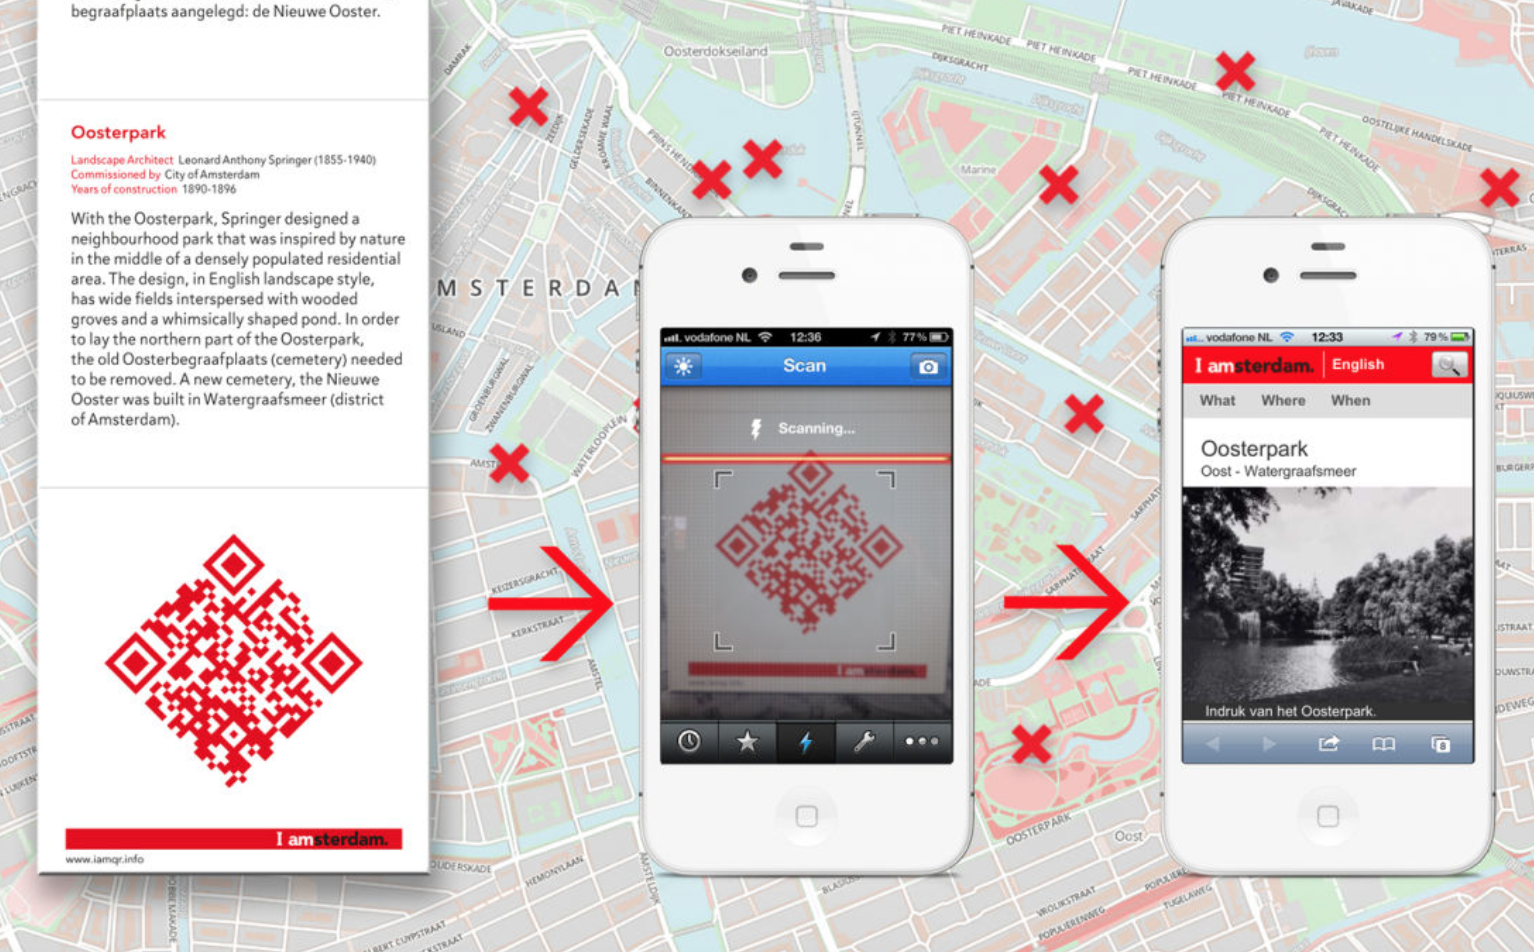 mobile phones with QR codes scanning to amsterdam map in the background